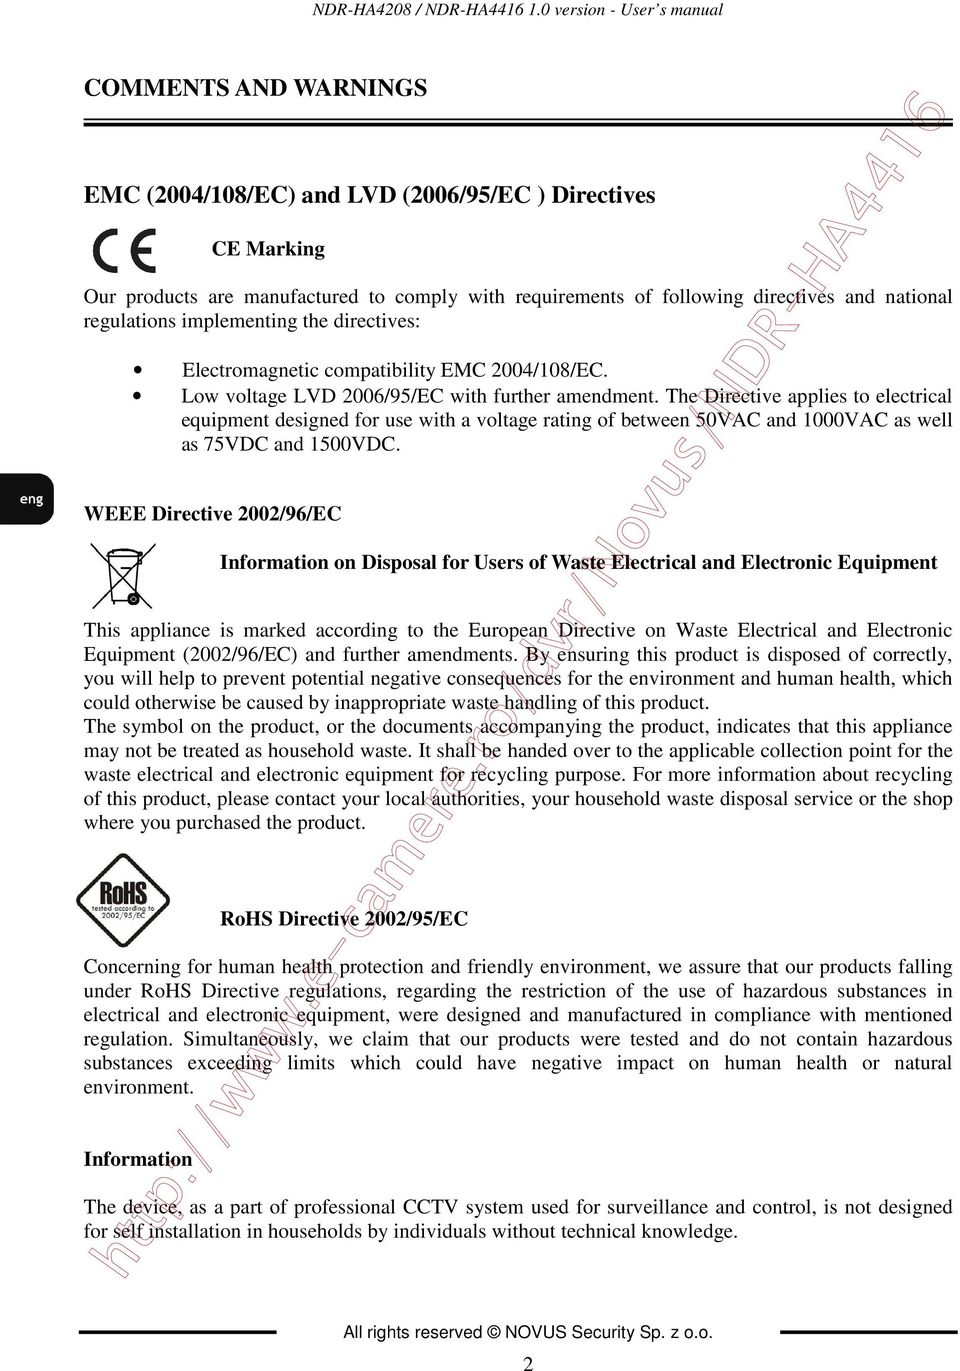 national regulations implementing the directives: Electromagnetic compatibility EMC 2004/108/EC. Low voltage LVD 2006/95/EC with further amendment.